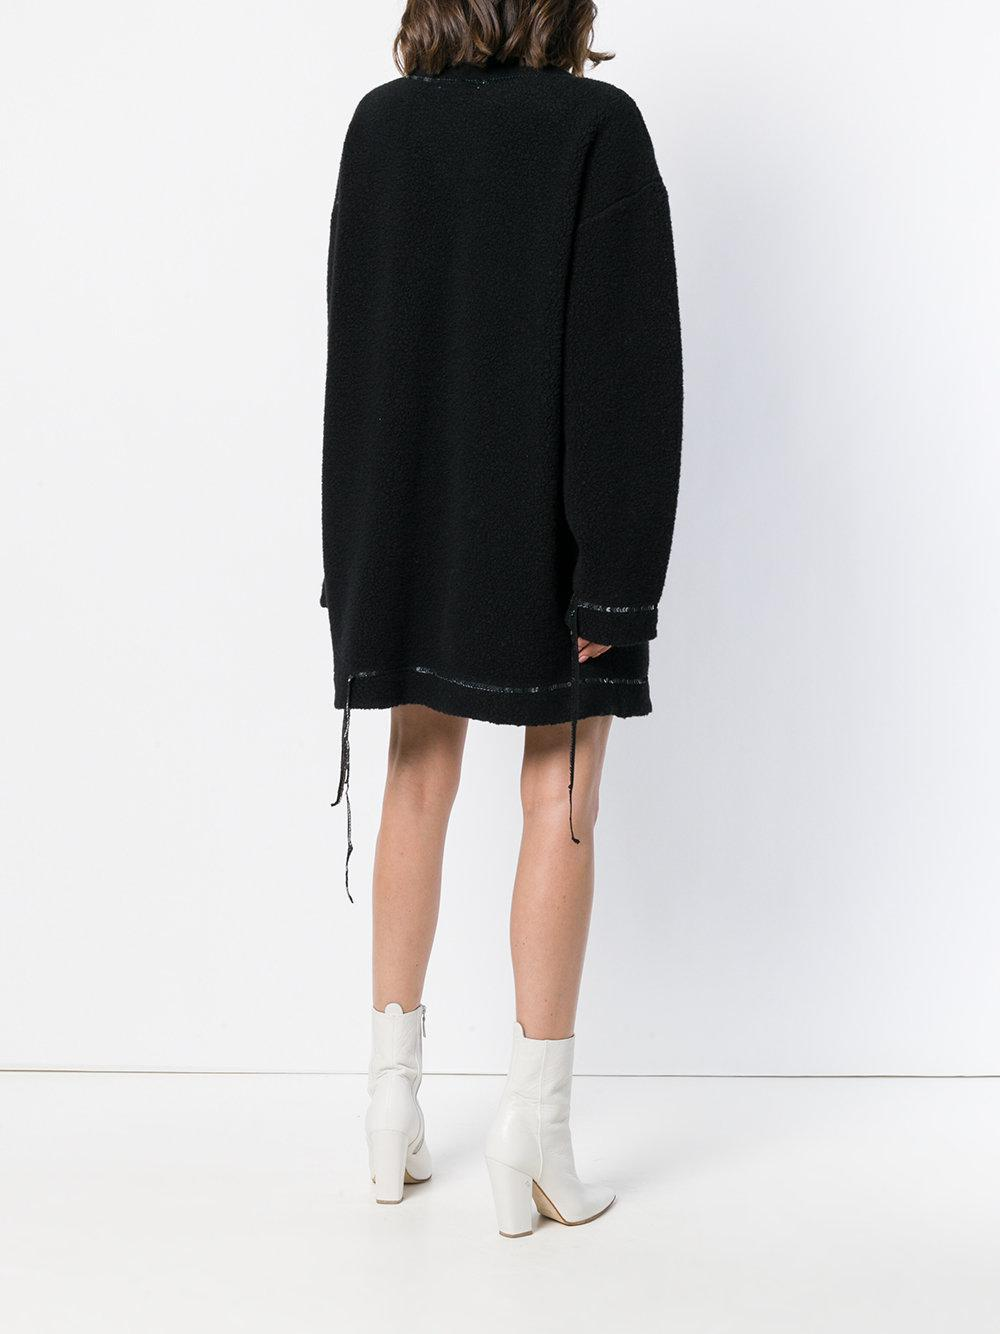 Mm6 Maison Margiela sequin embellished oversized sweater dress 2018 New Cheap Price Release Dates Cheap Price Quality For Sale Free Shipping 2018 Newest Cheap Price X41qxN